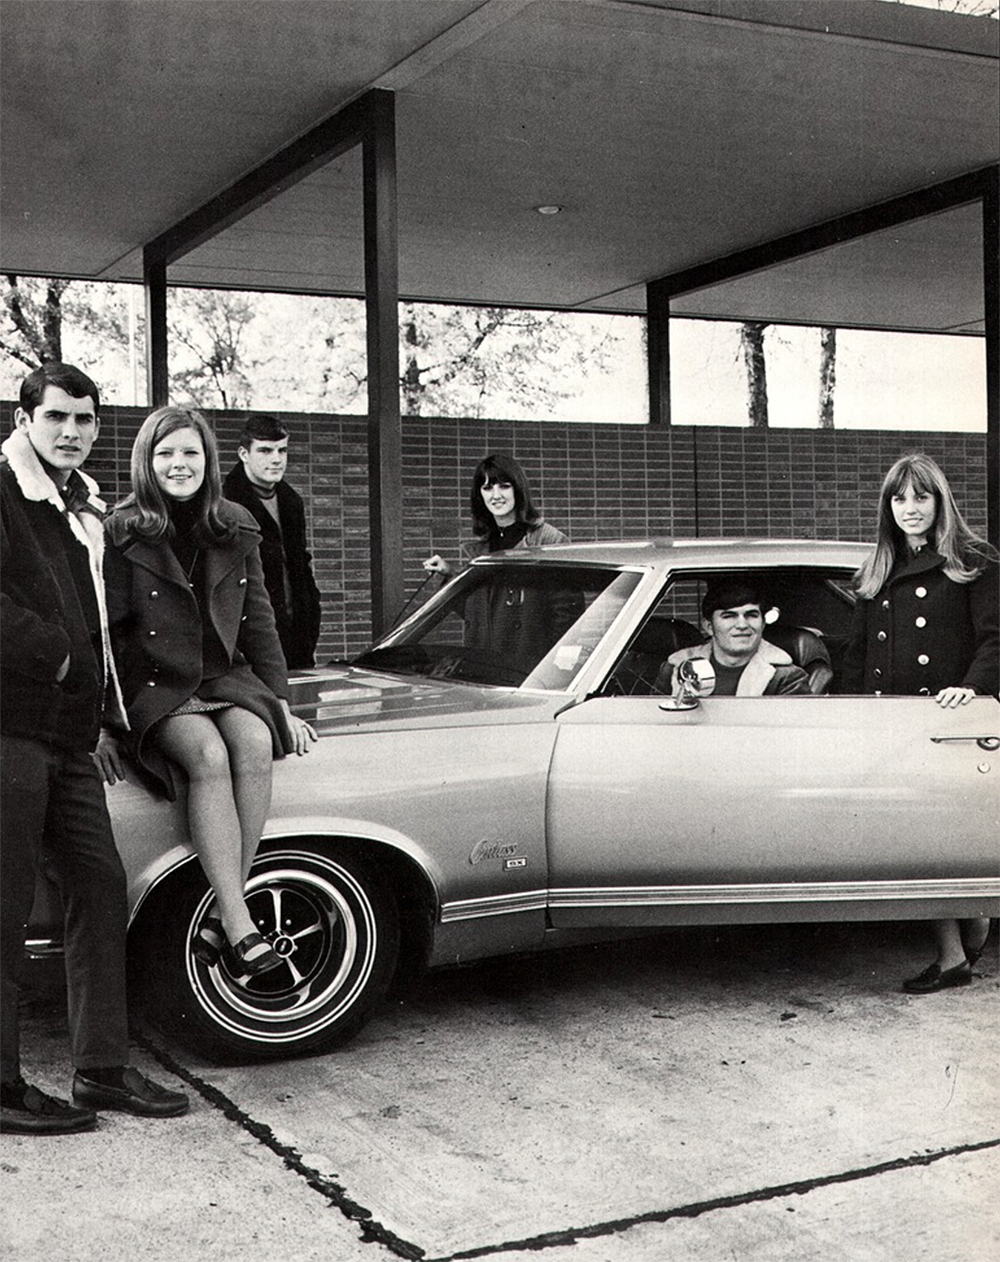 1971 youth and car